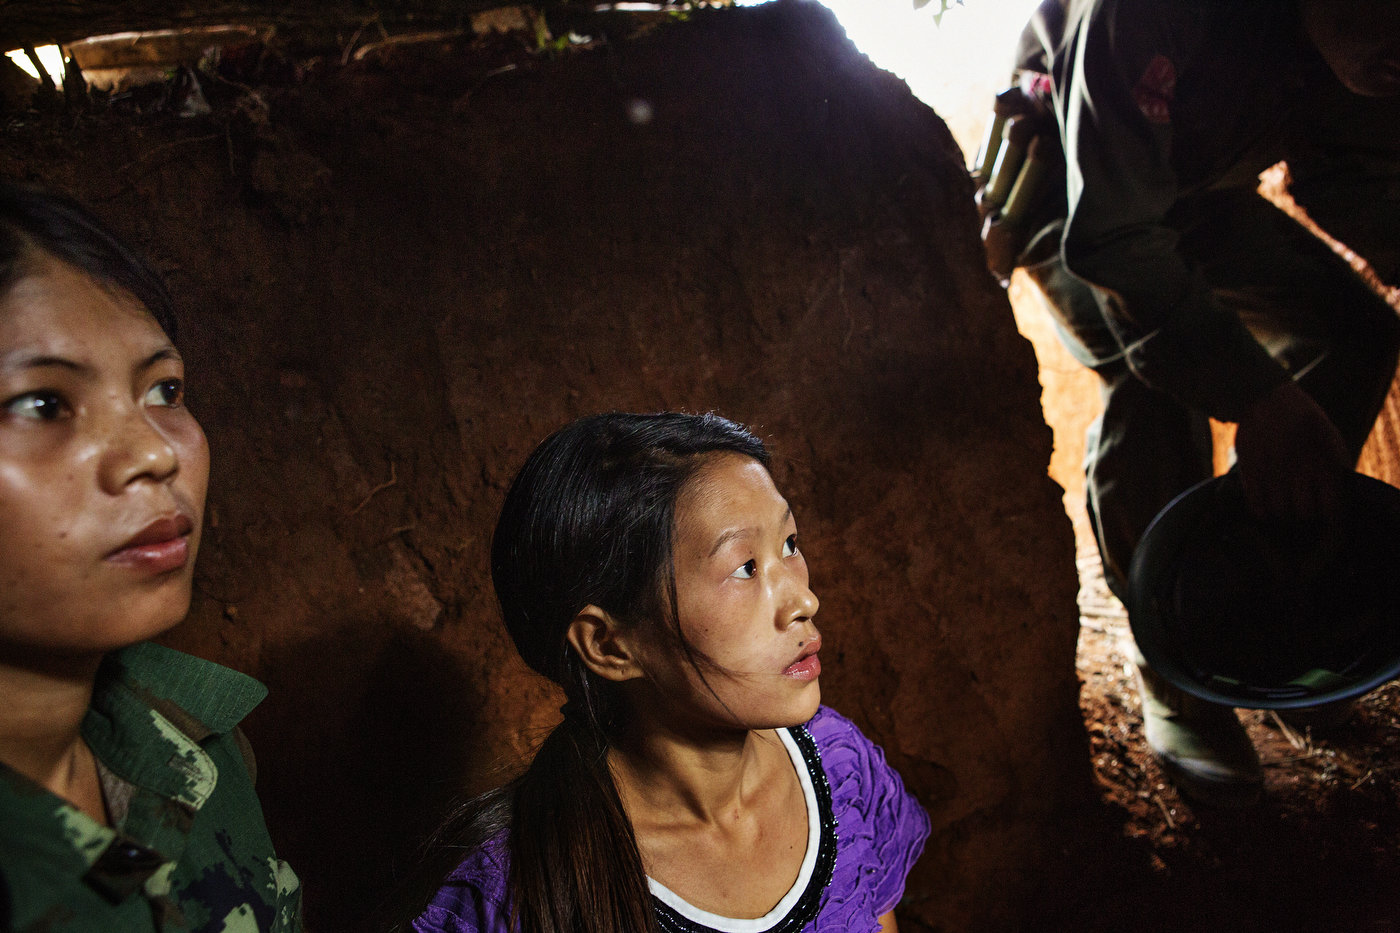 Two female Kachin Independence Army (KIA) medics take cover in a bunker as Burmese jets are approaching in the distance December 30, 2012 close to the small town of Namsangyang. In recent days, the Burmese Army has deployed helicopter gunships and fighter jets.